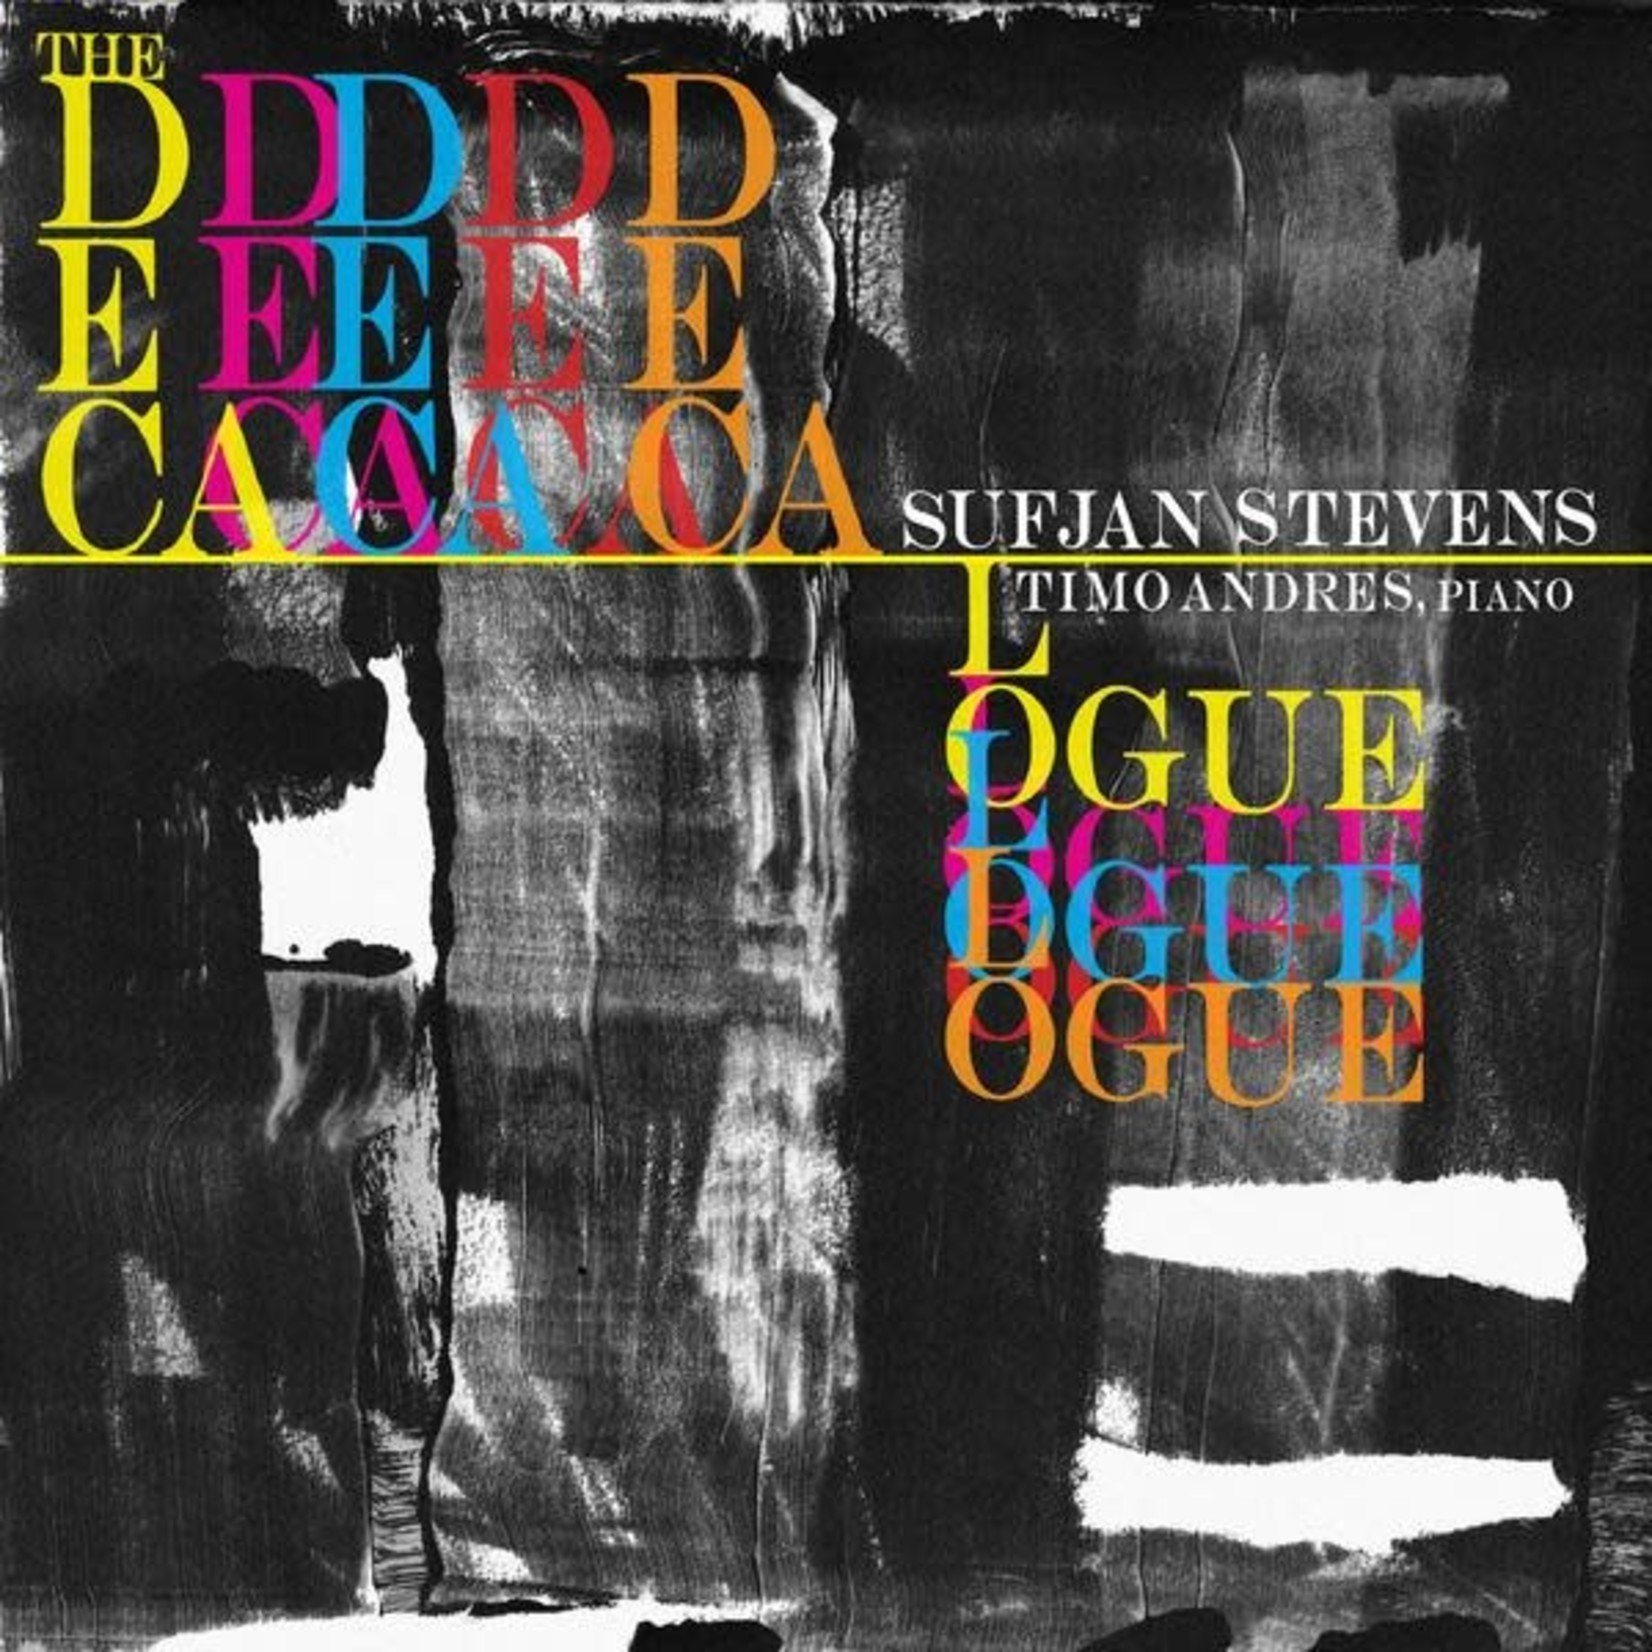 [New] Stevens, Sufjan & Timo Andres: The Decalogue